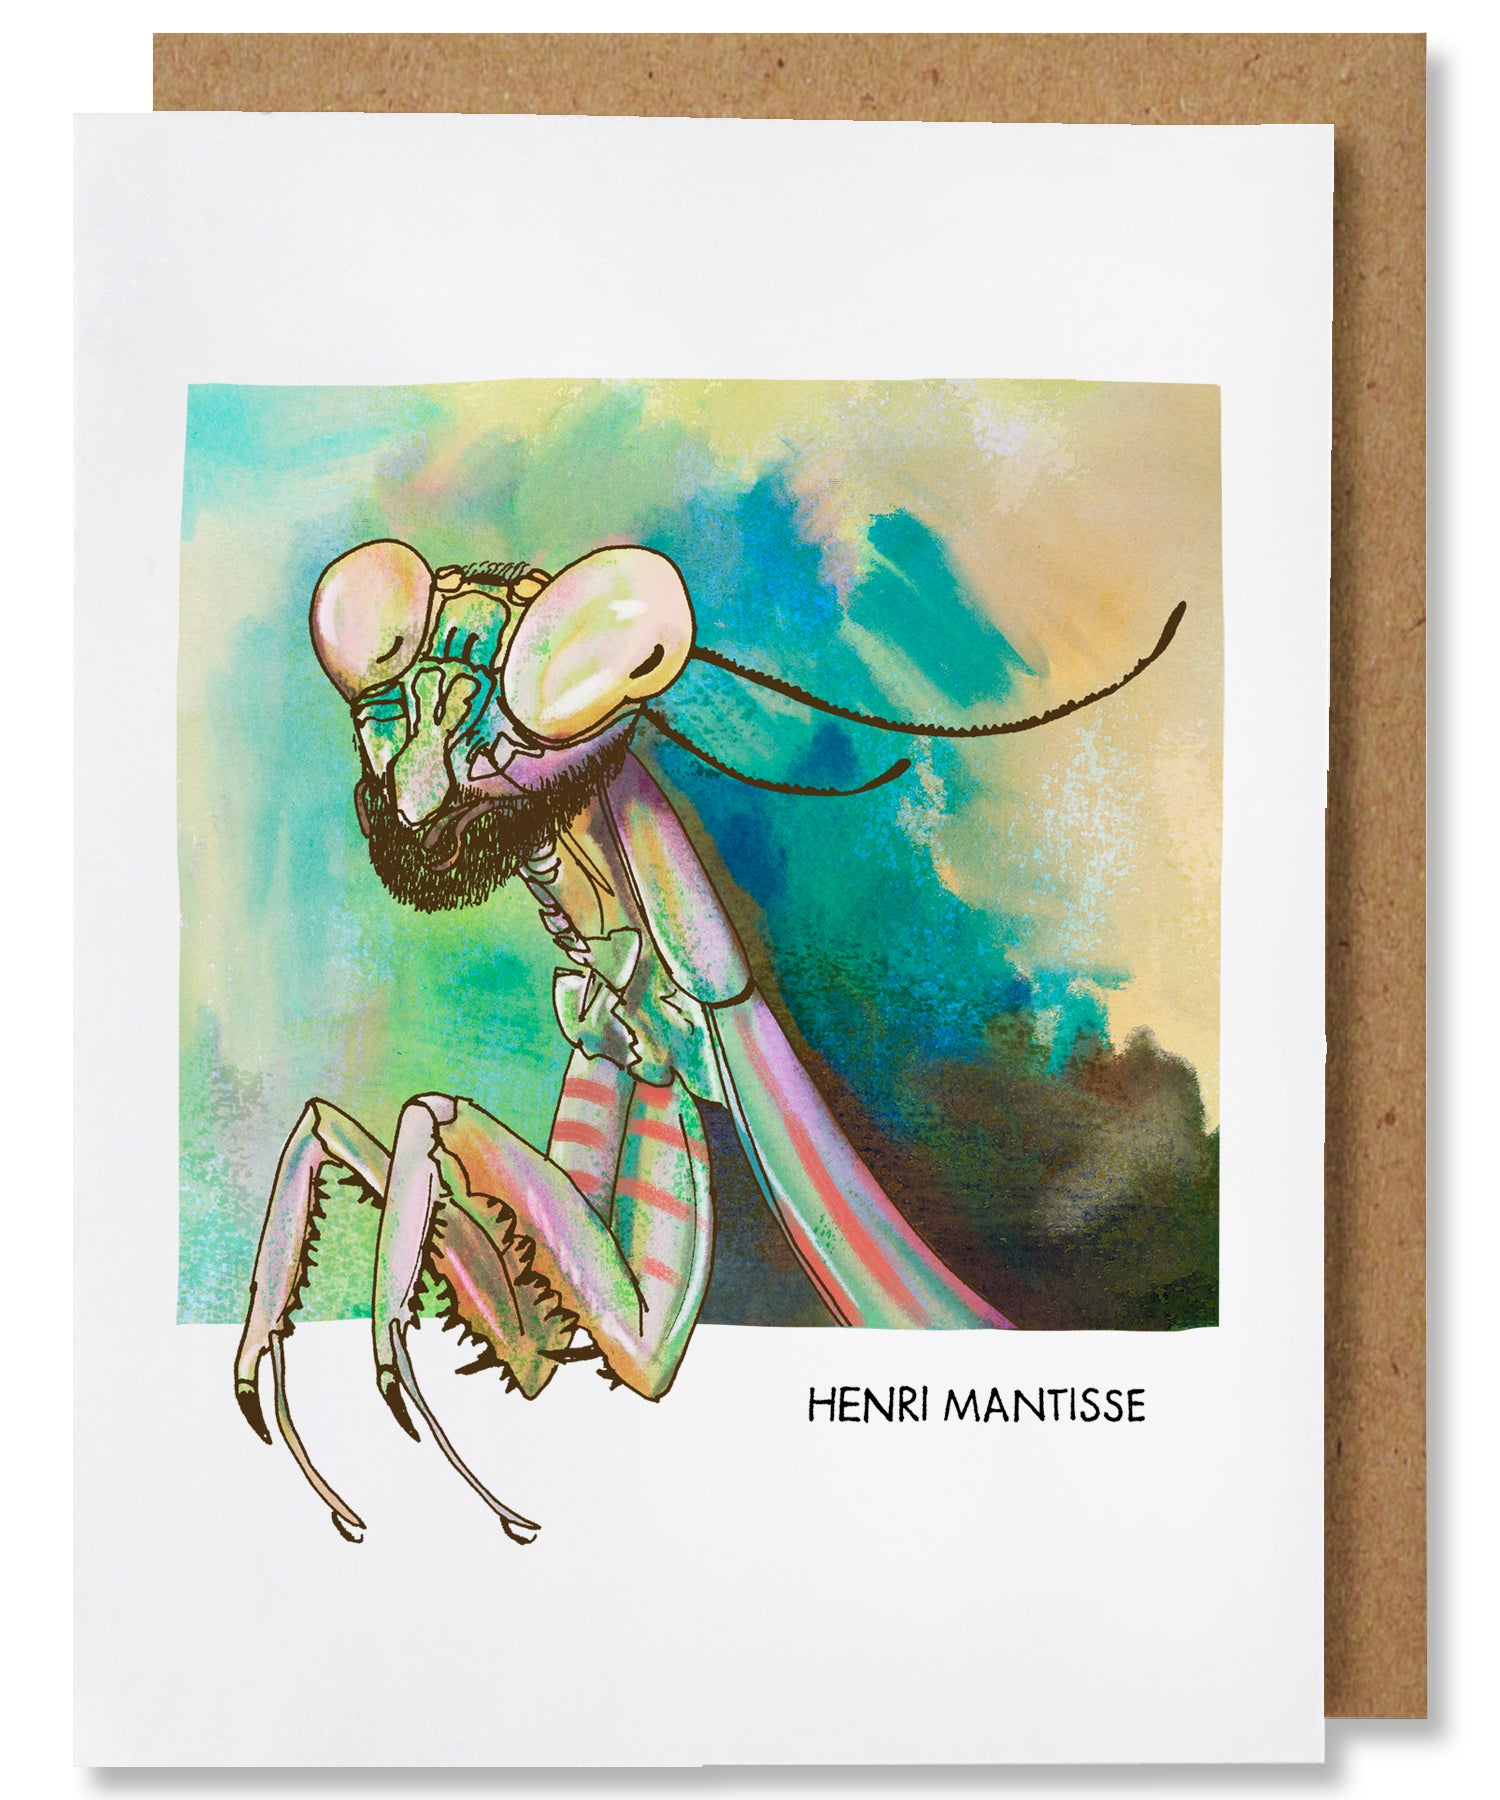 Henri Mantisse Greeting Card - Heart of the Home PA